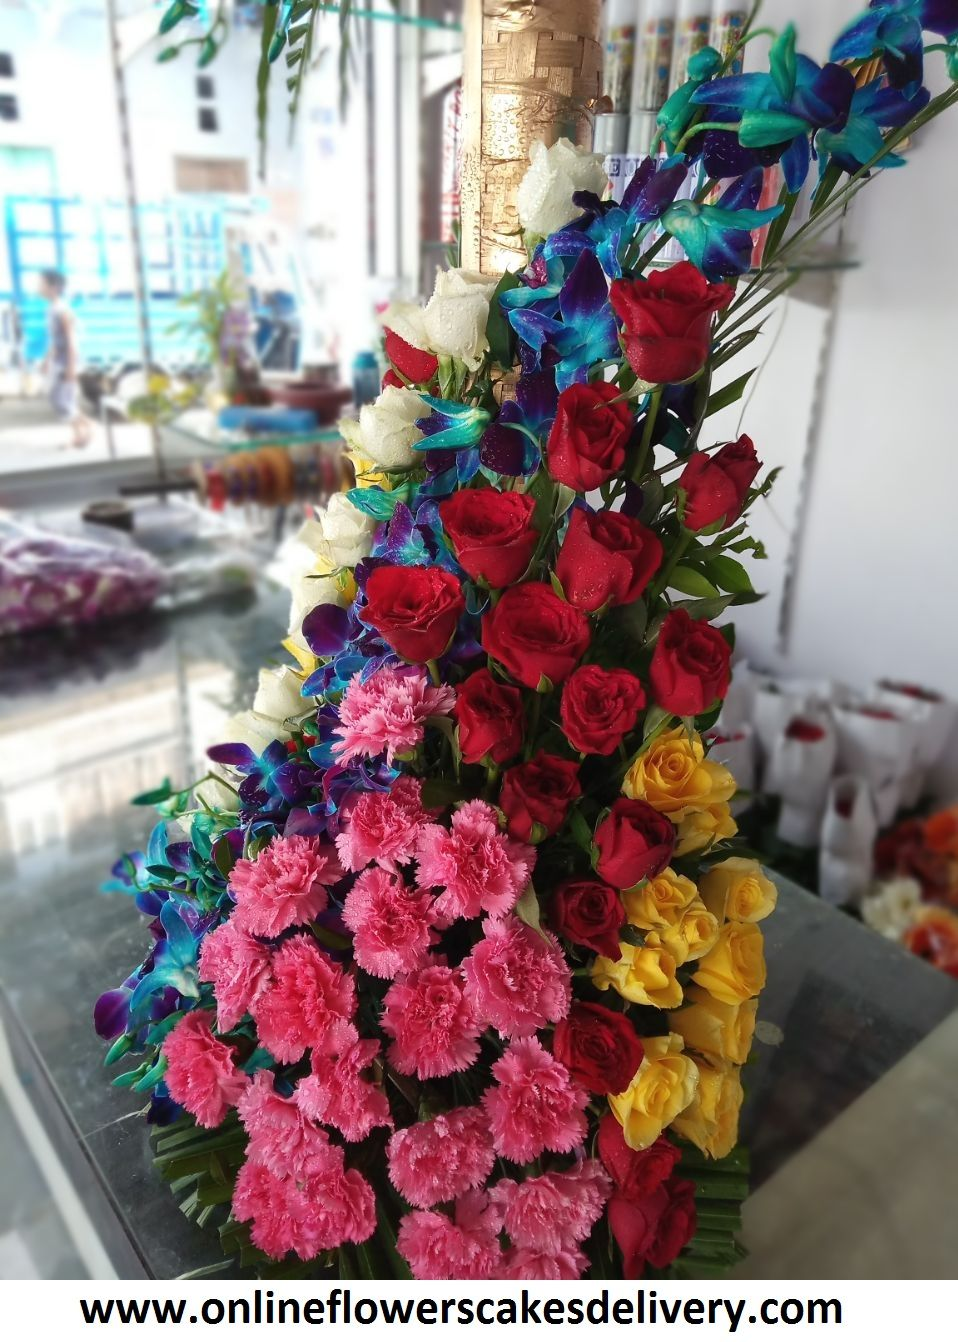 Send flowers to thane an exquisite online florist in thane welcomes flower izmirmasajfo